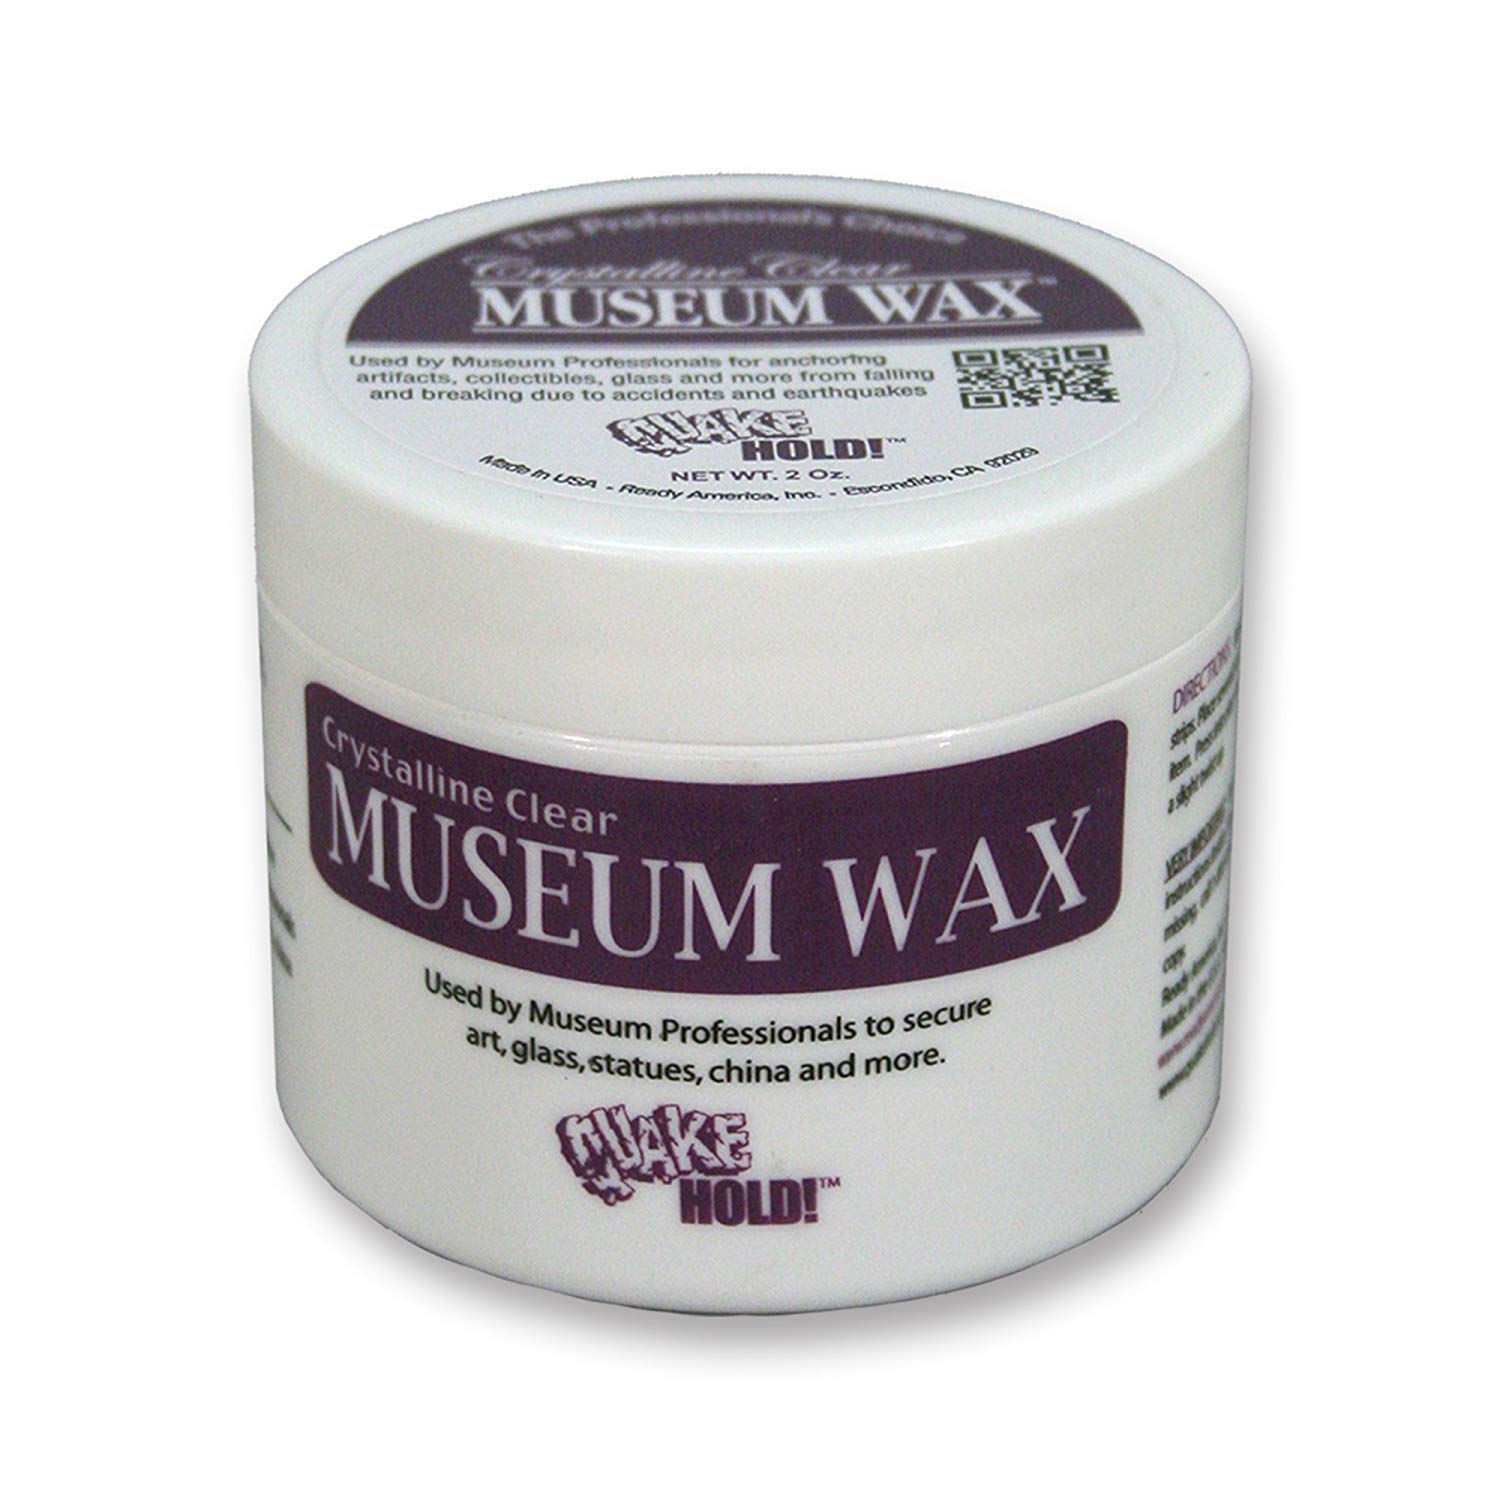 Quakehold! 66111 Museum Wax, 2 Ounce, Clear (5 Pack) by Quakehold!